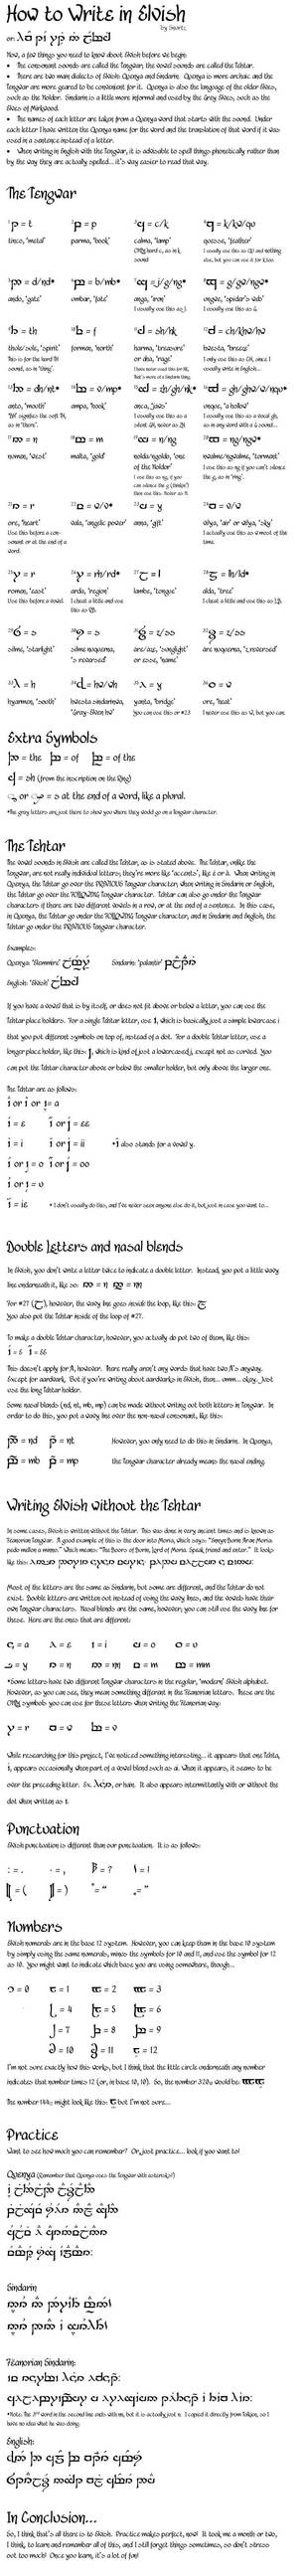 TUTORIAL: How to write Elvish by snurtz